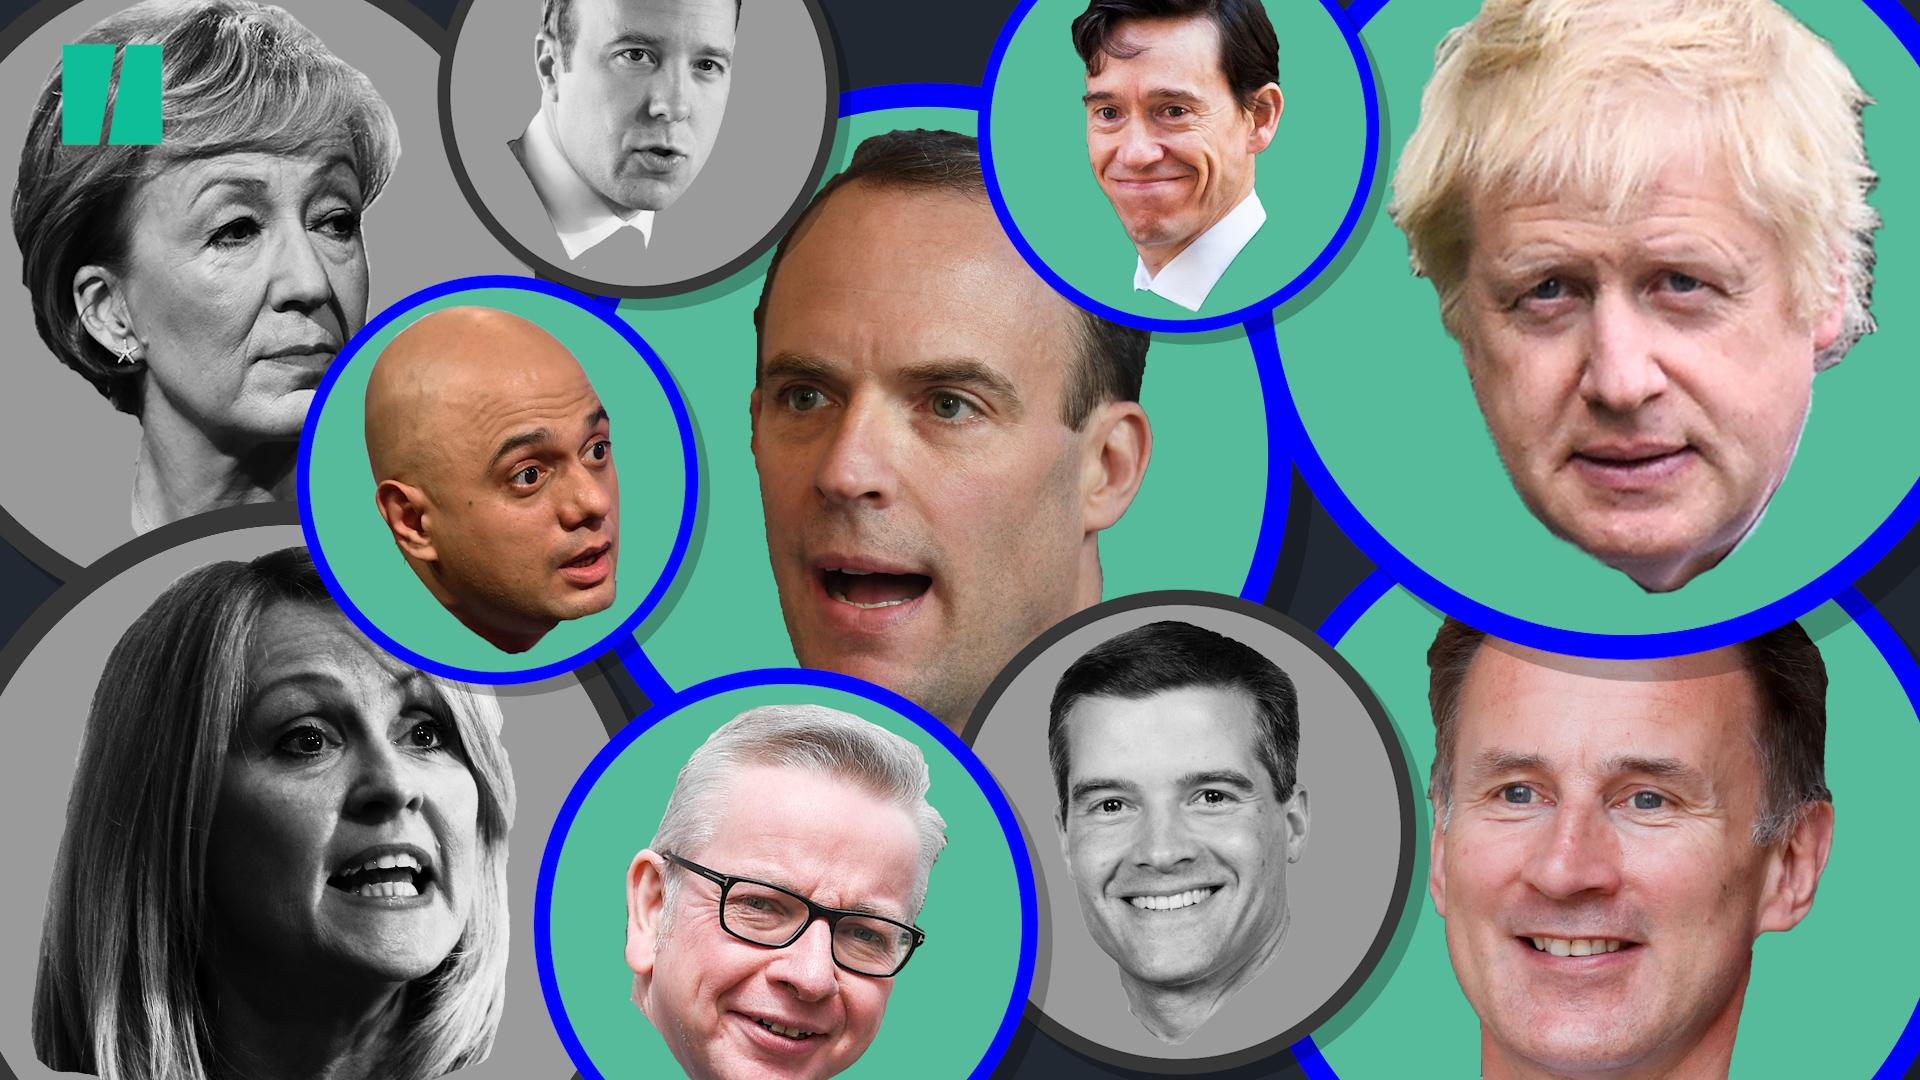 Ahead of Tonight's Tory Leadership Vote: Who Are The Candidates And What Do They Stand For?